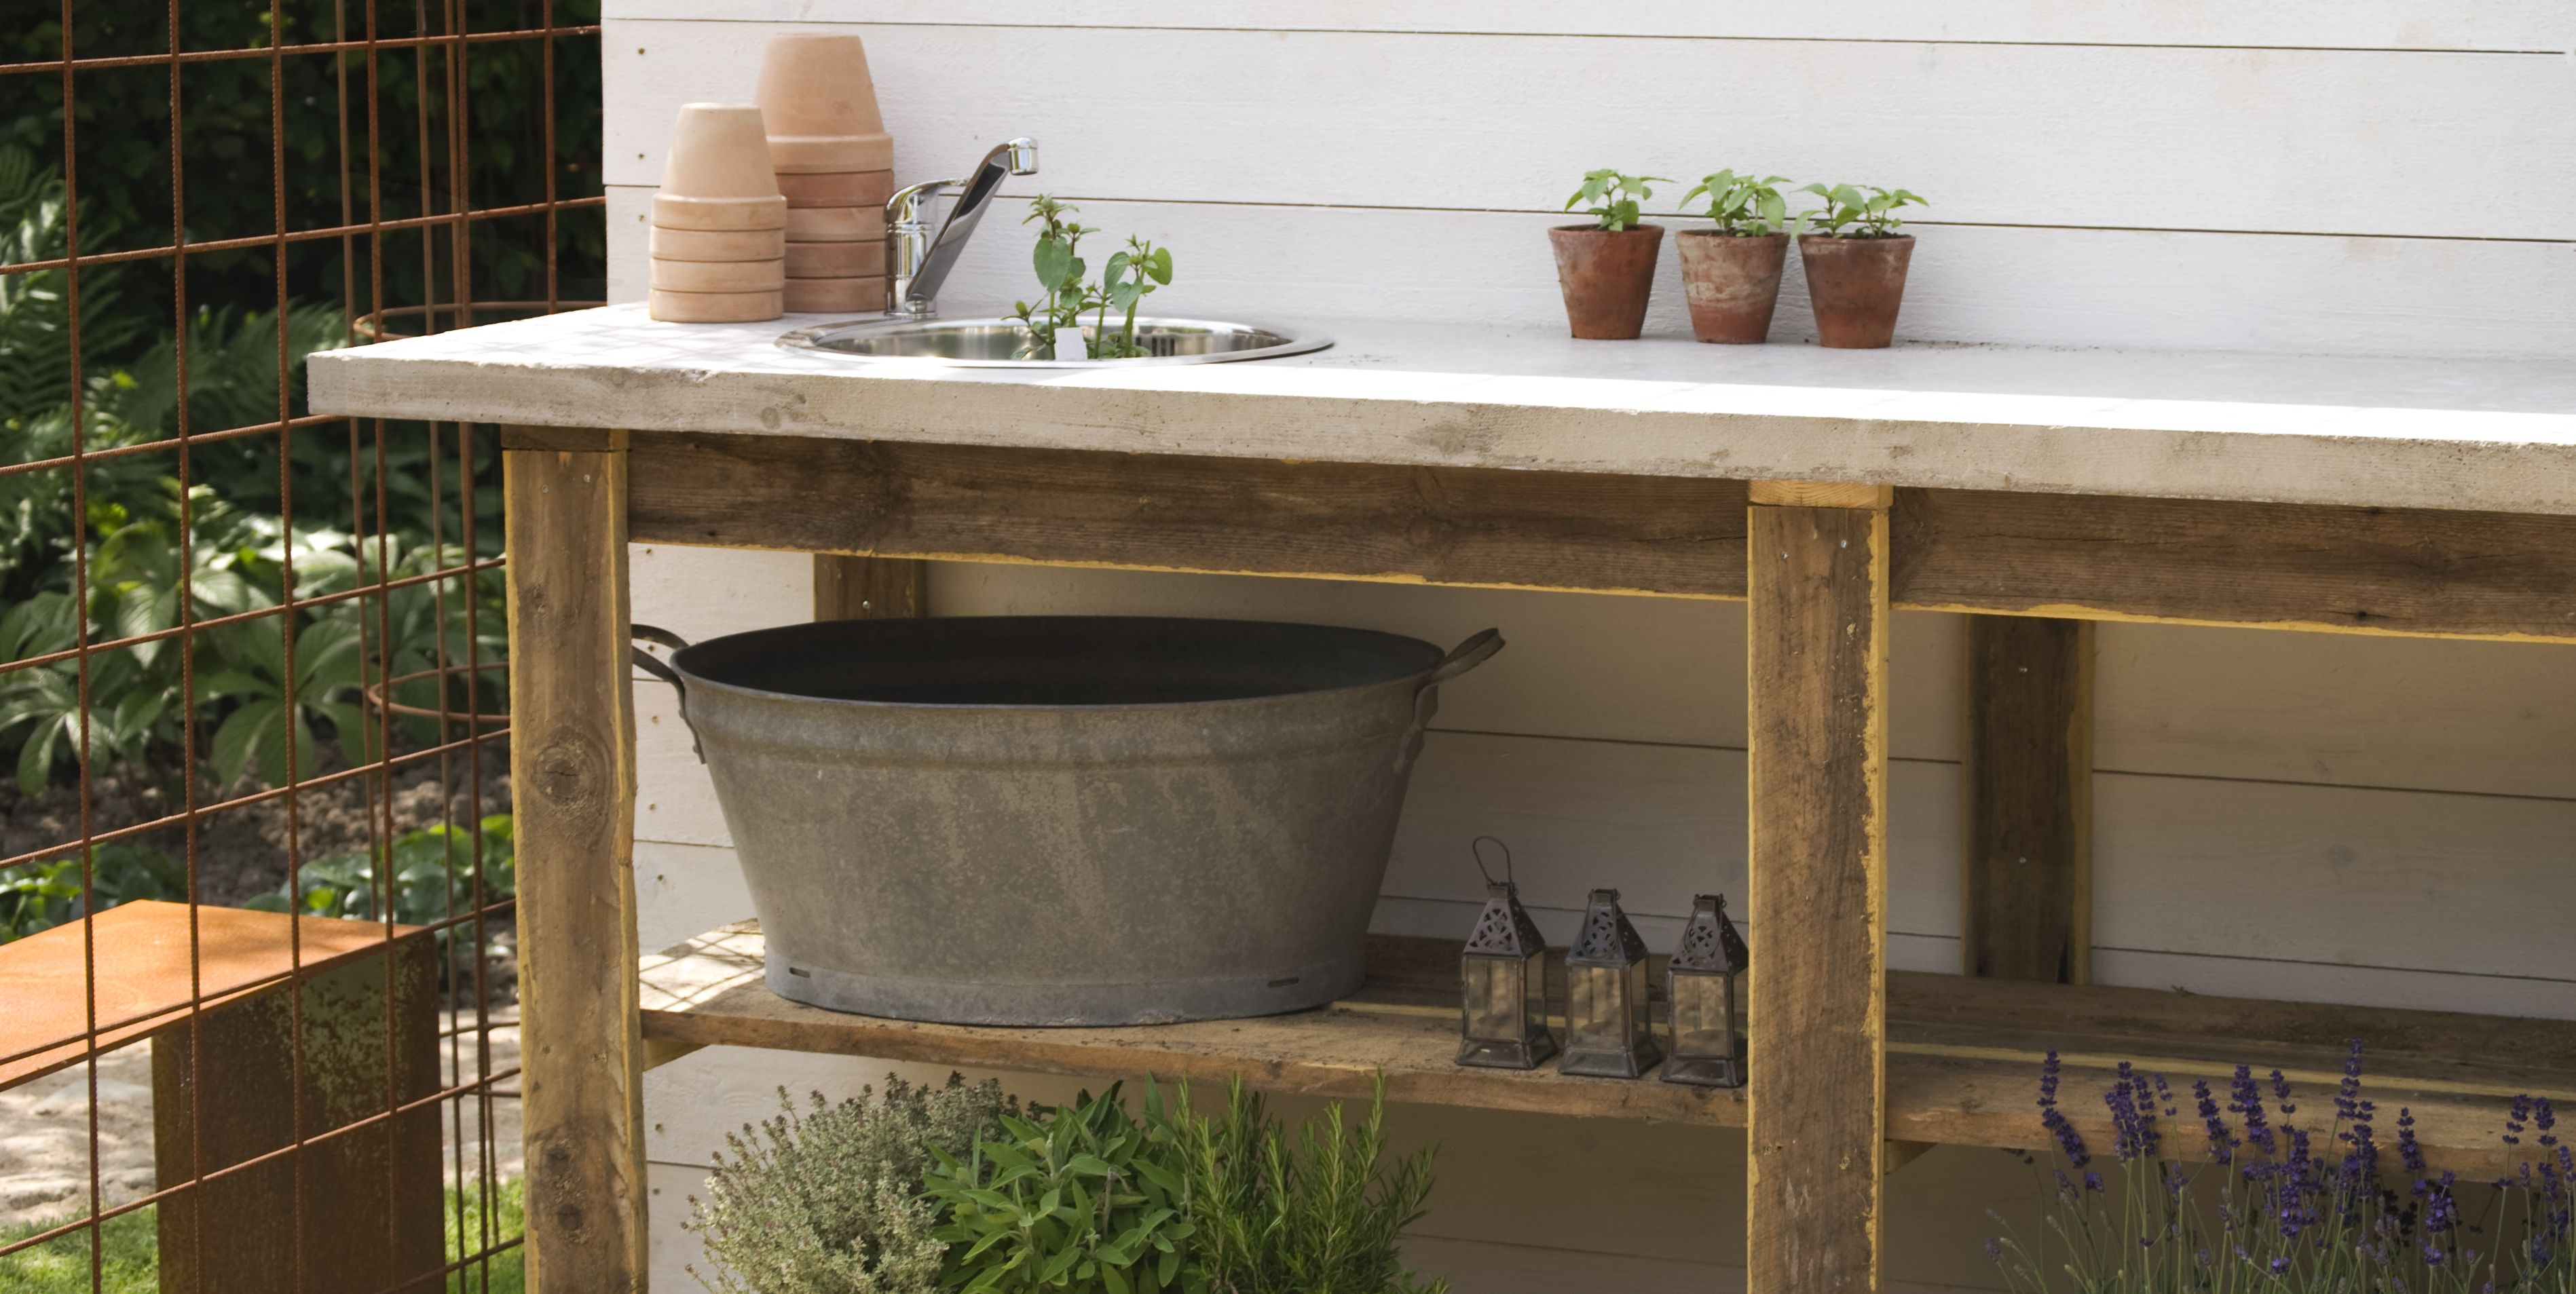 20 Potting Benches That Rival Joanna Gaines's Garden Workstation